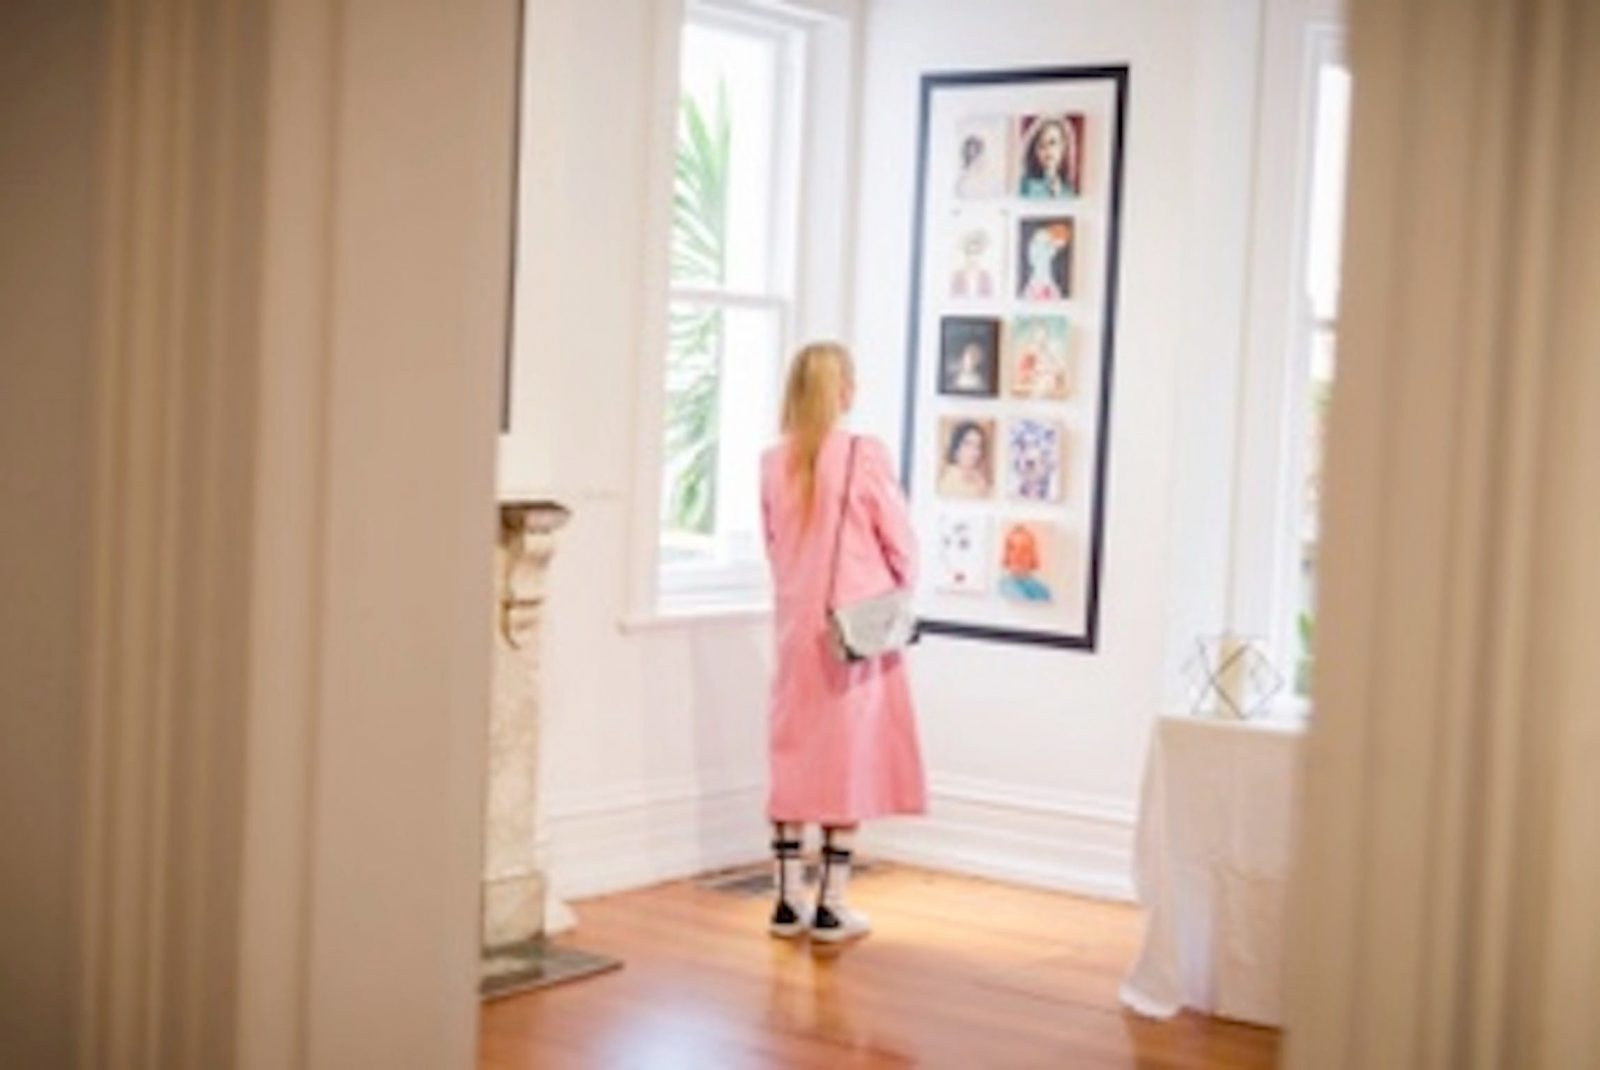 Woman in gallery looking at postcards on a wall